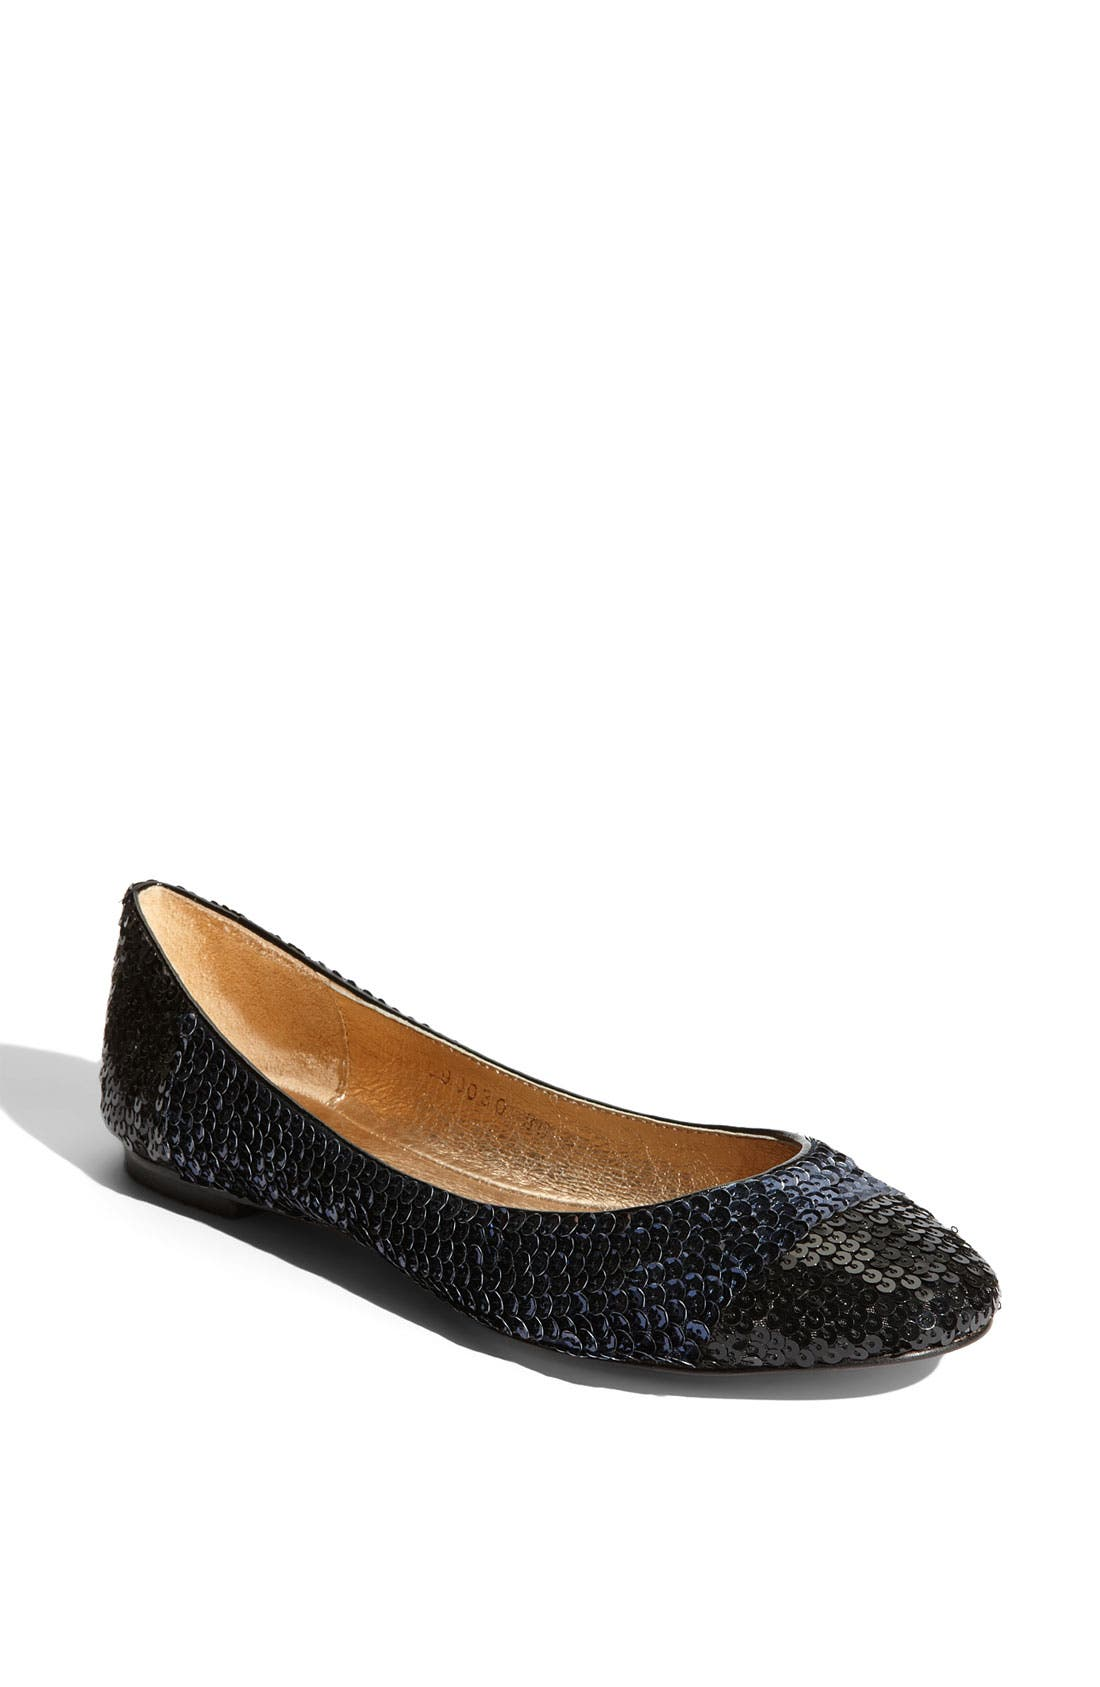 Main Image - All Black 'More' Sequin Flat